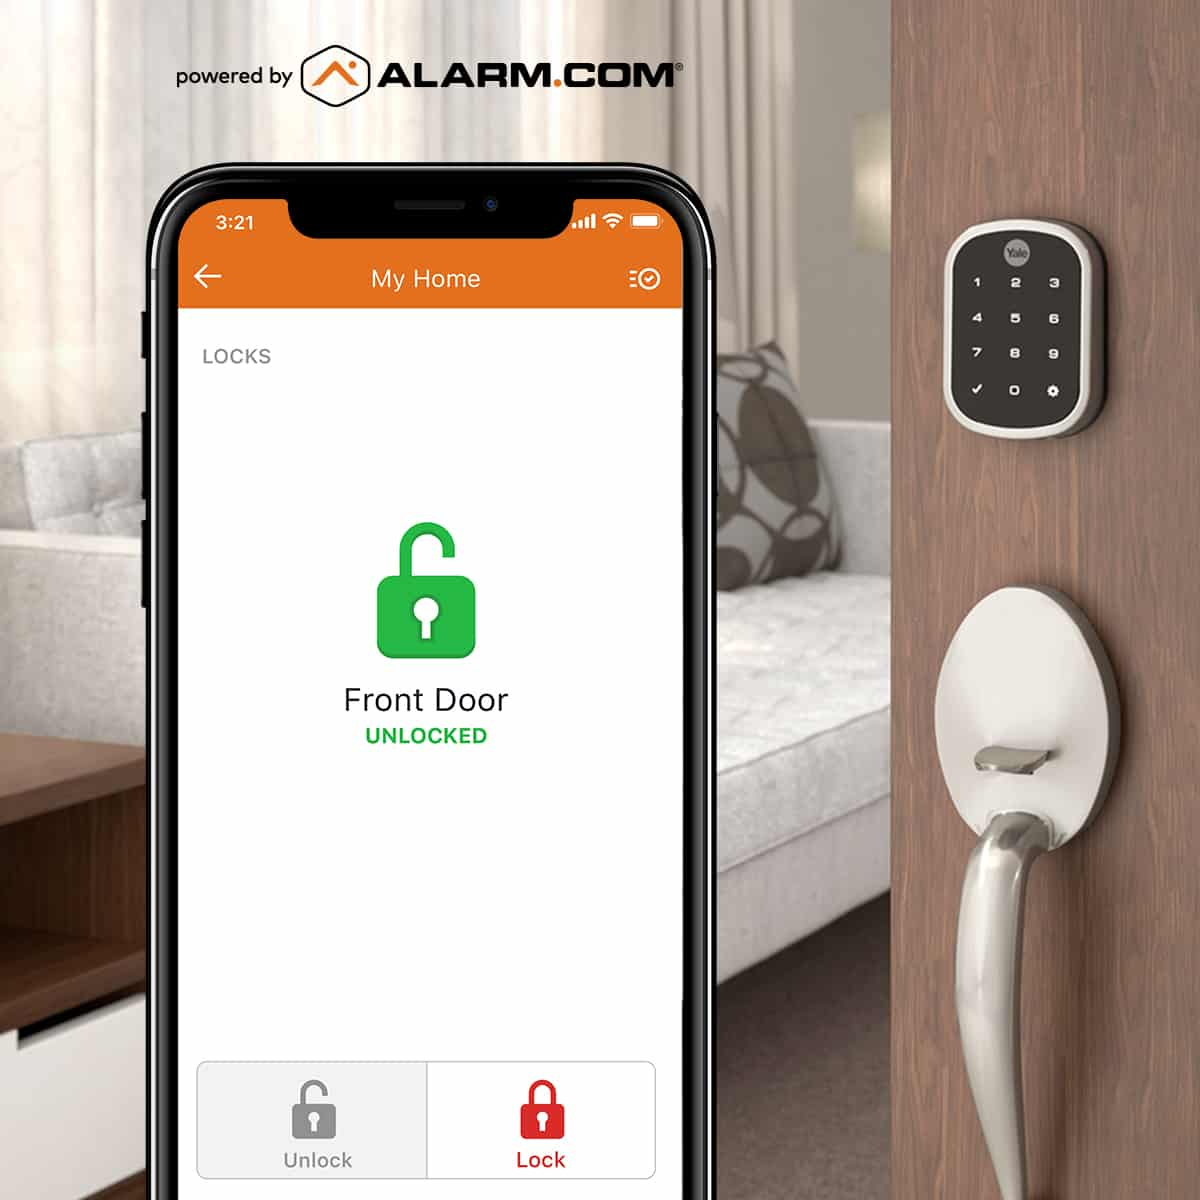 Smart Home Security System Buying Guide - Smart Locks